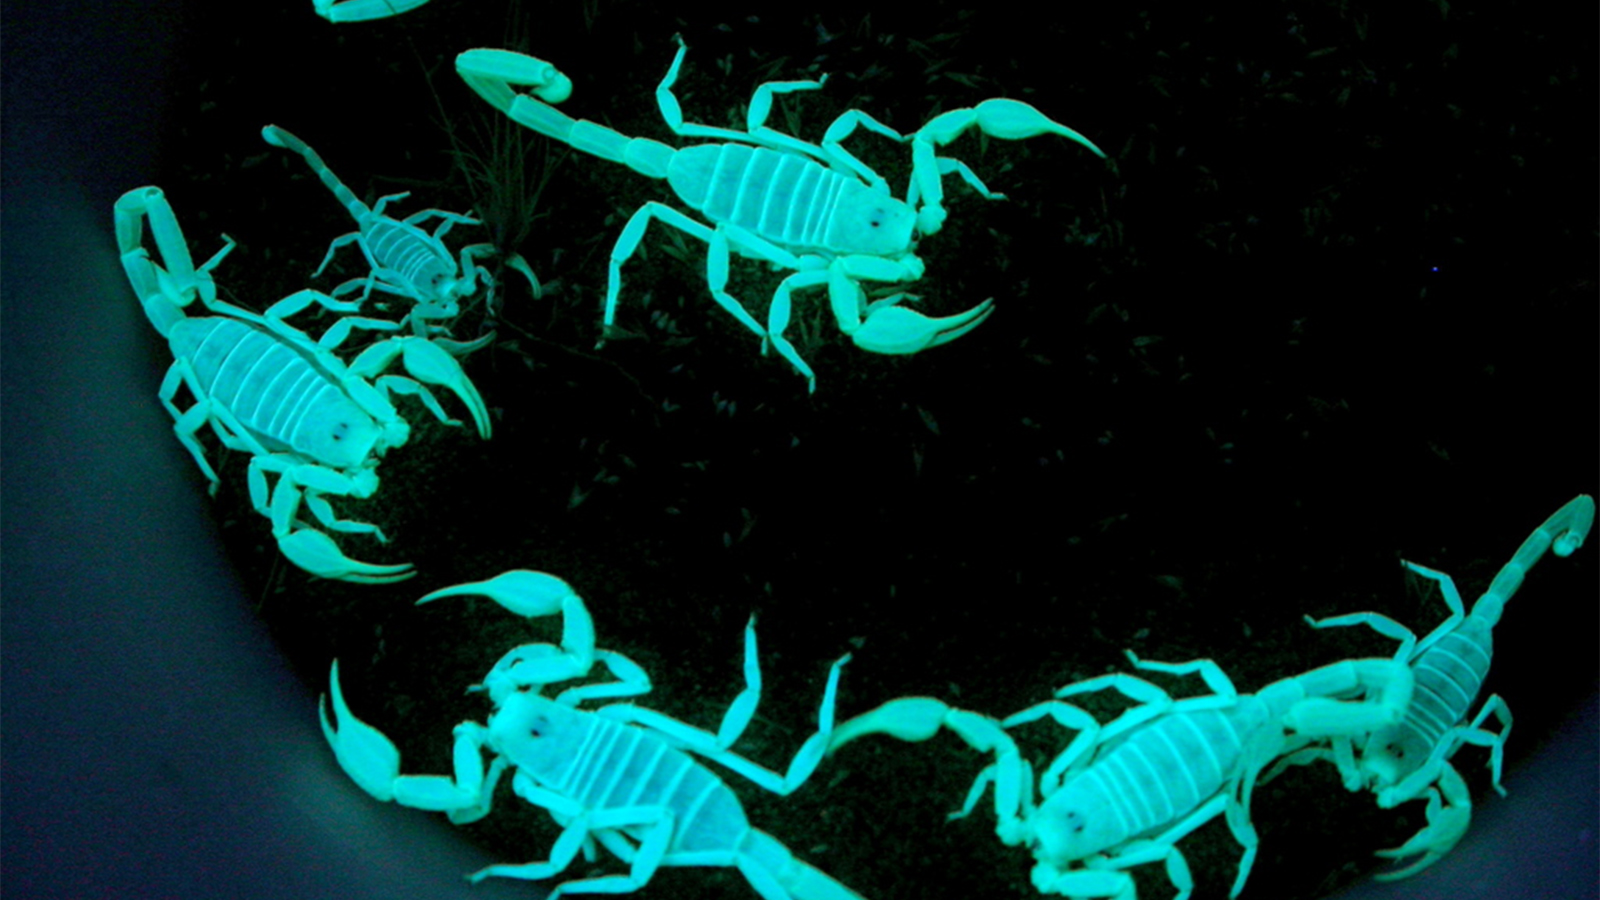 A Dozen (or more) Objects that Fluoresce Under a Black Light